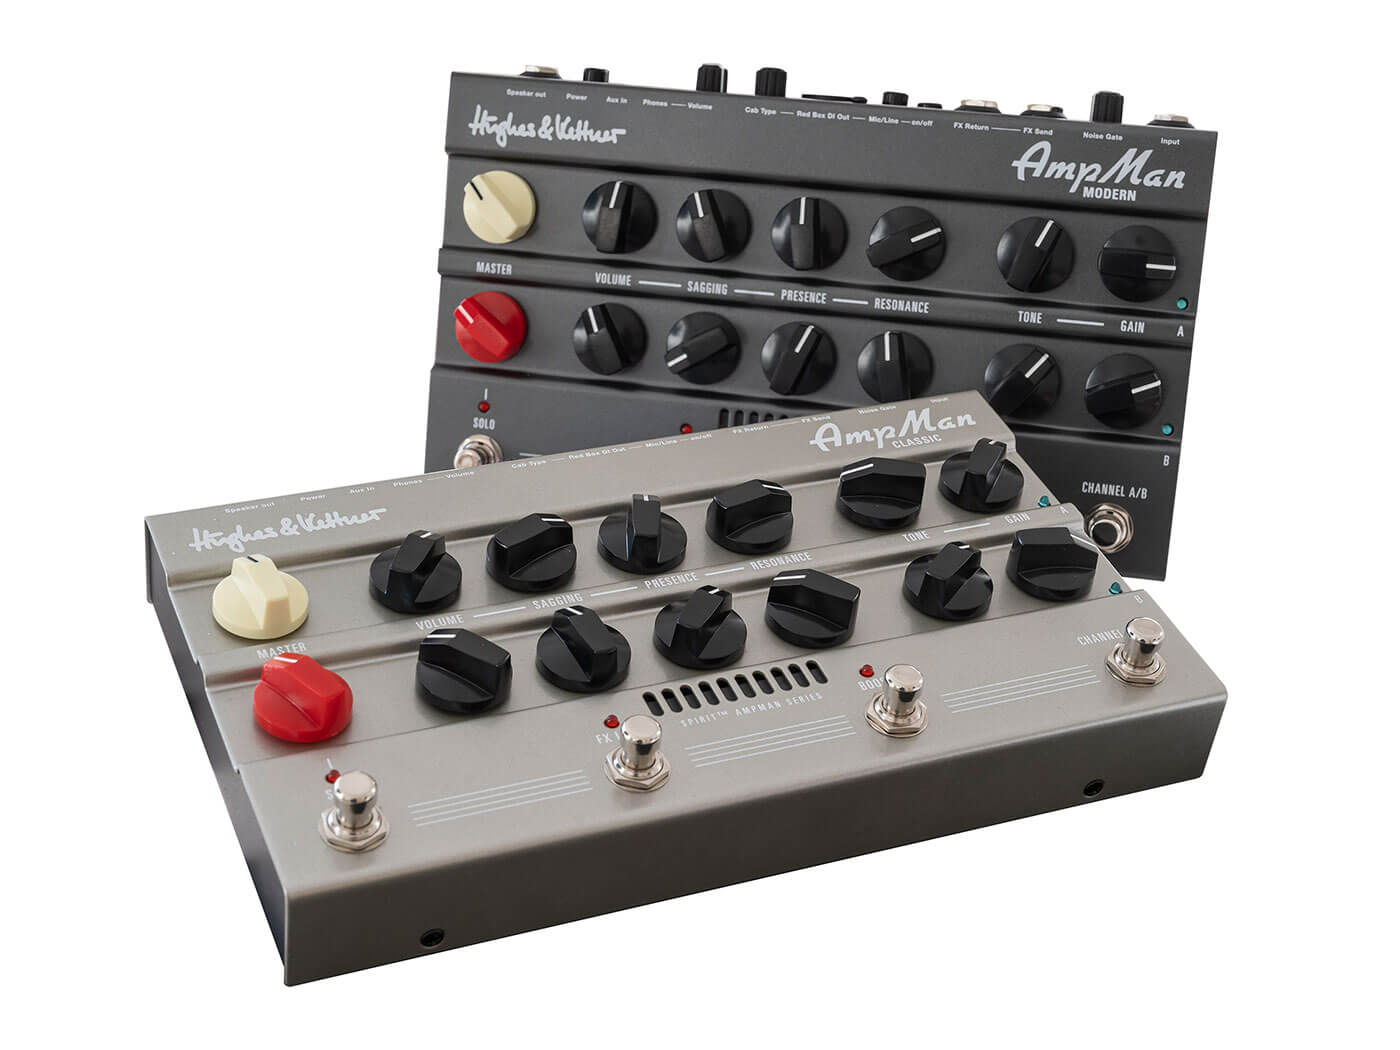 Hughes and Kettner's AmpMan Classic and Modern